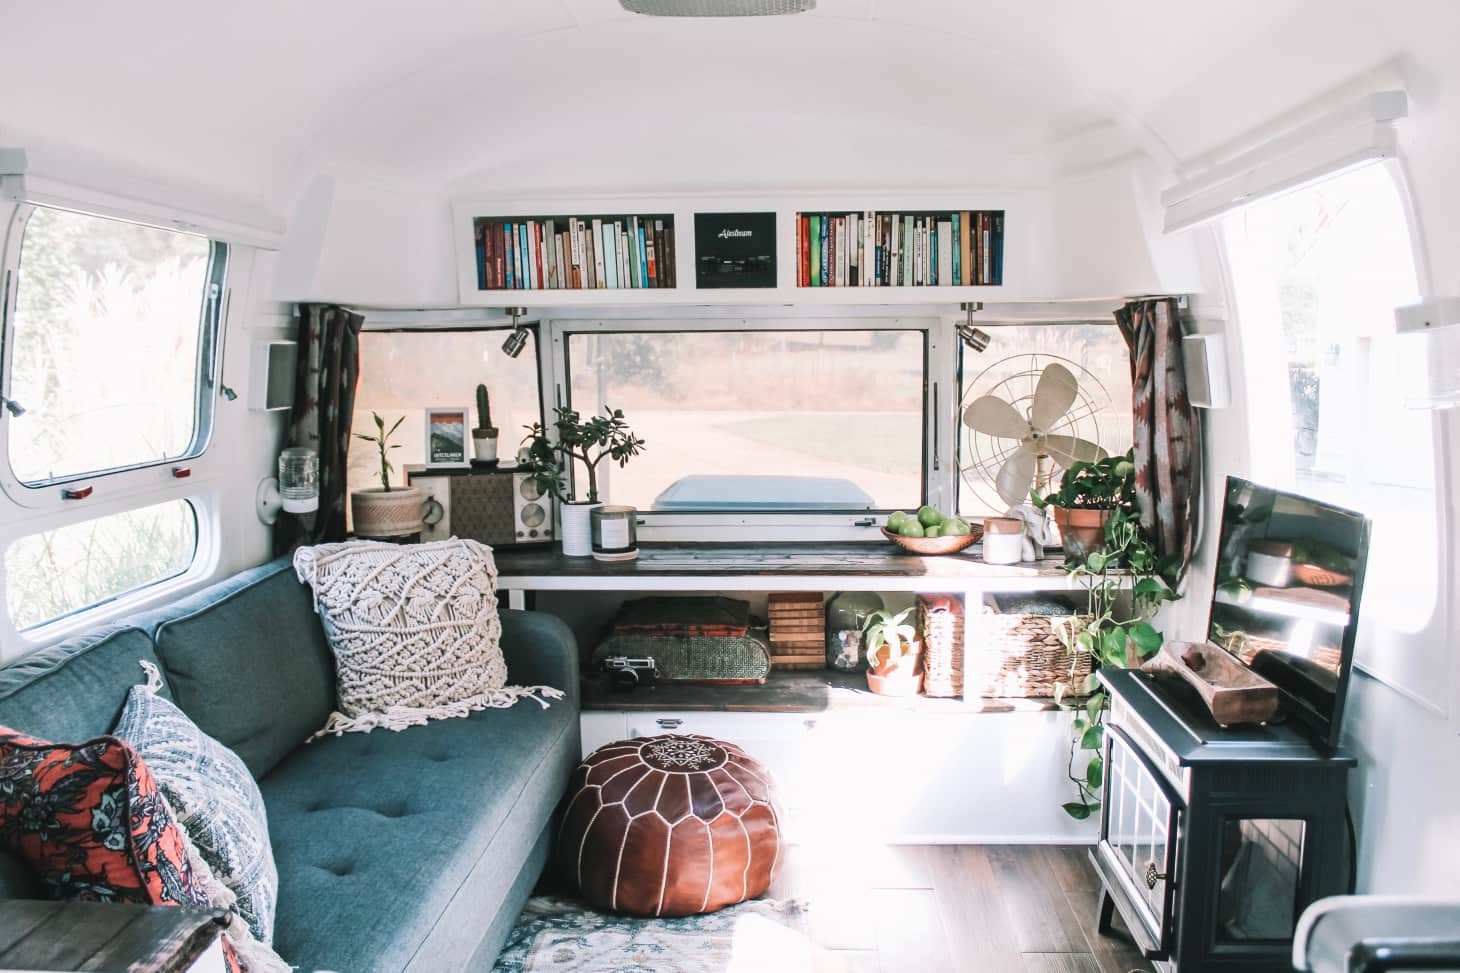 Maximalist Tiny House Interior Design Ideas Apartment Therapy